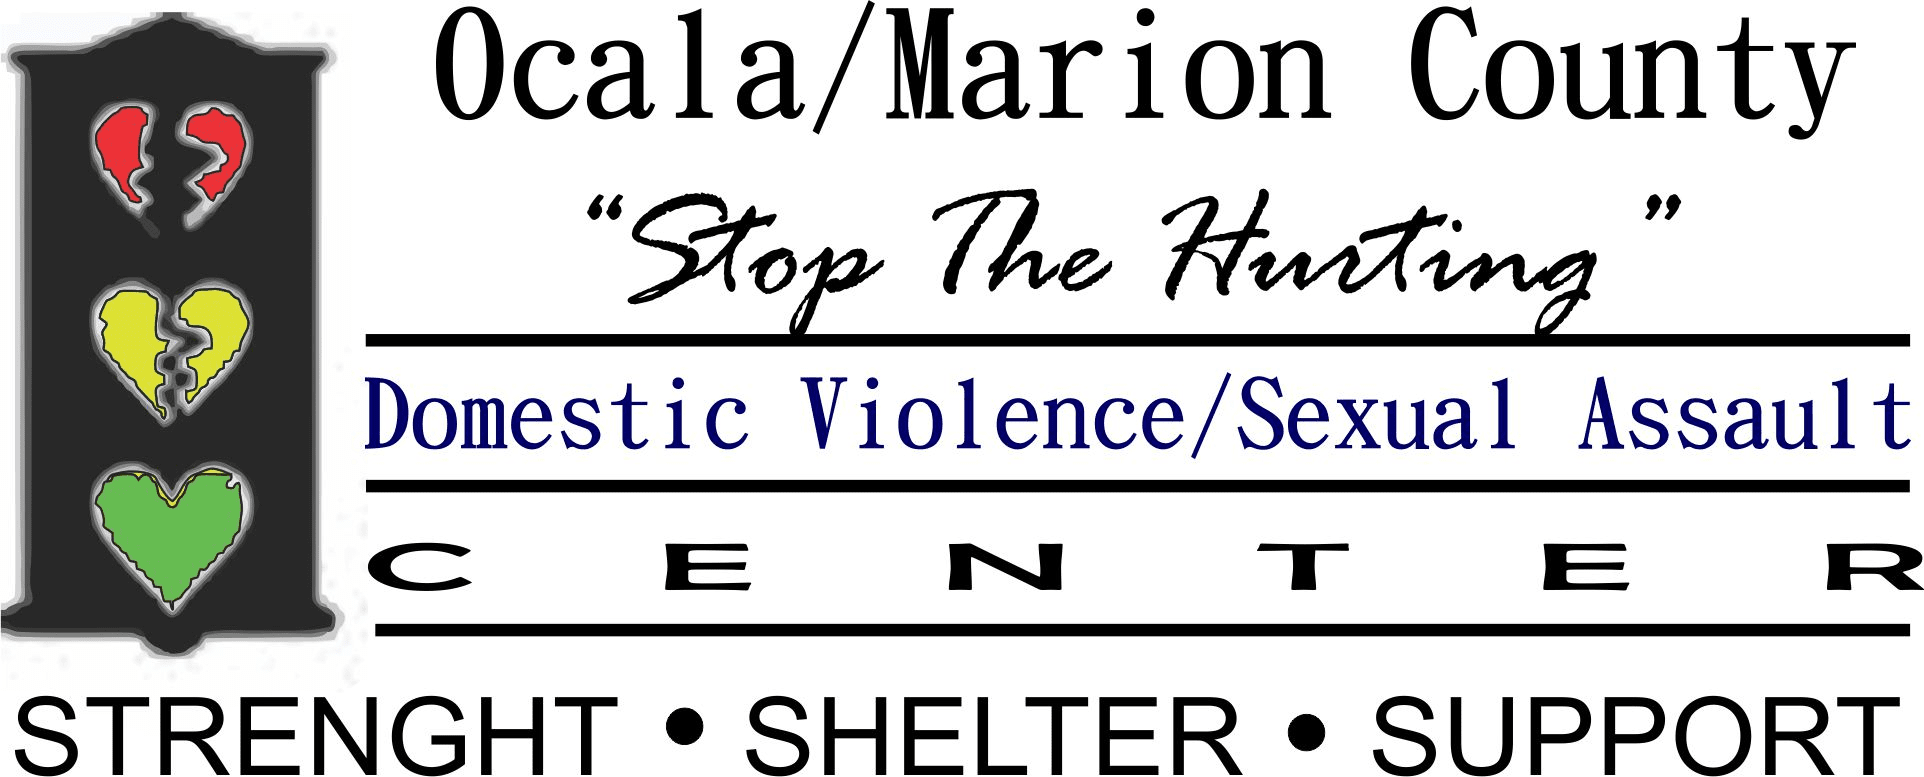 Rape Crisis/Spouse Abuse Center